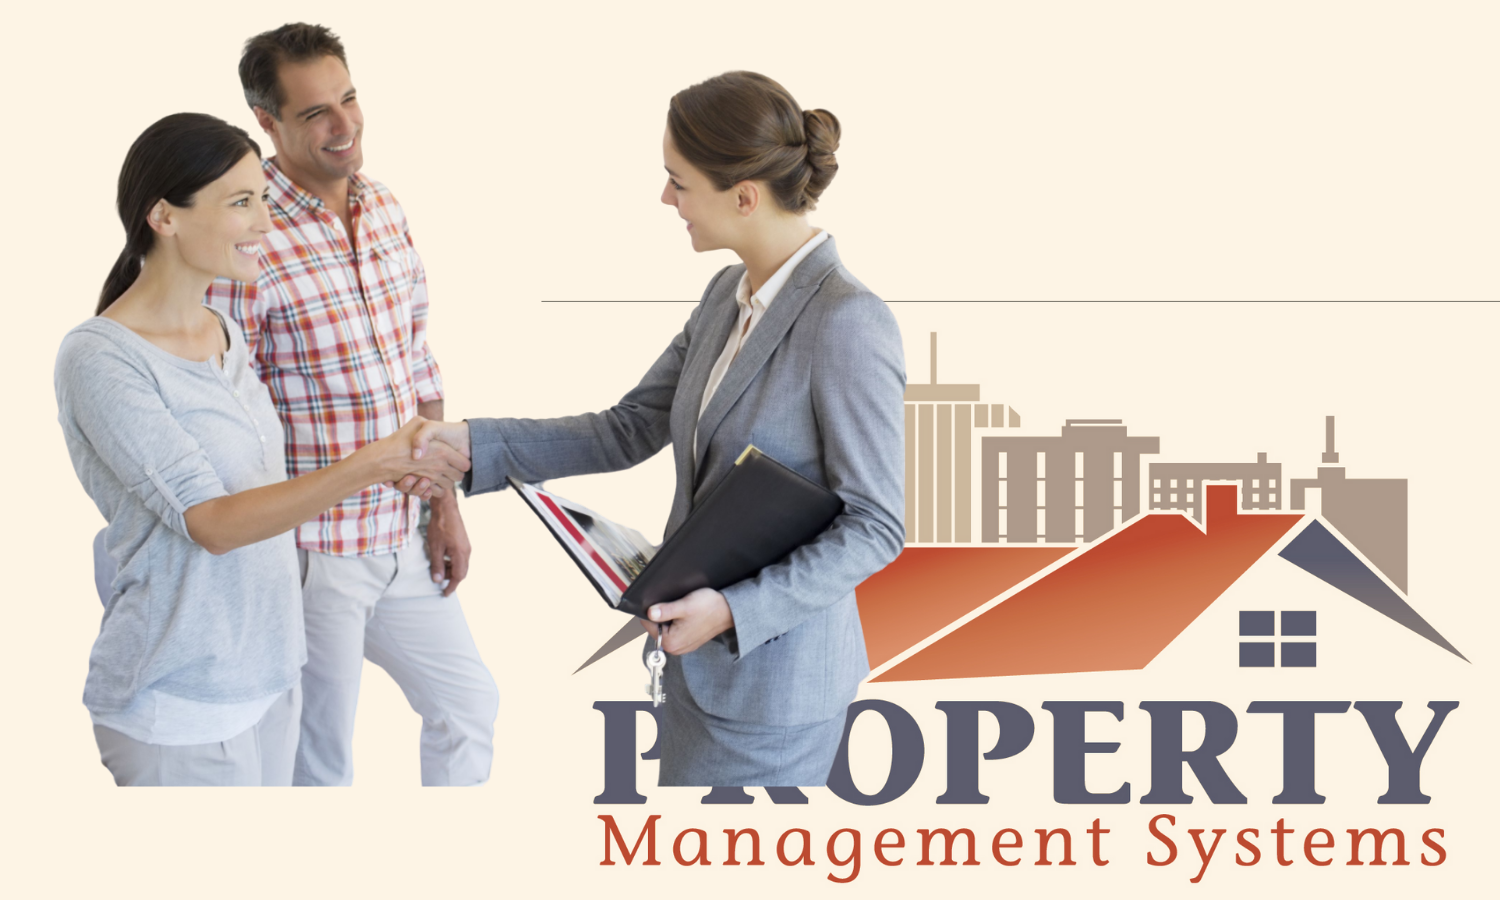 Couple Meeting Property Management